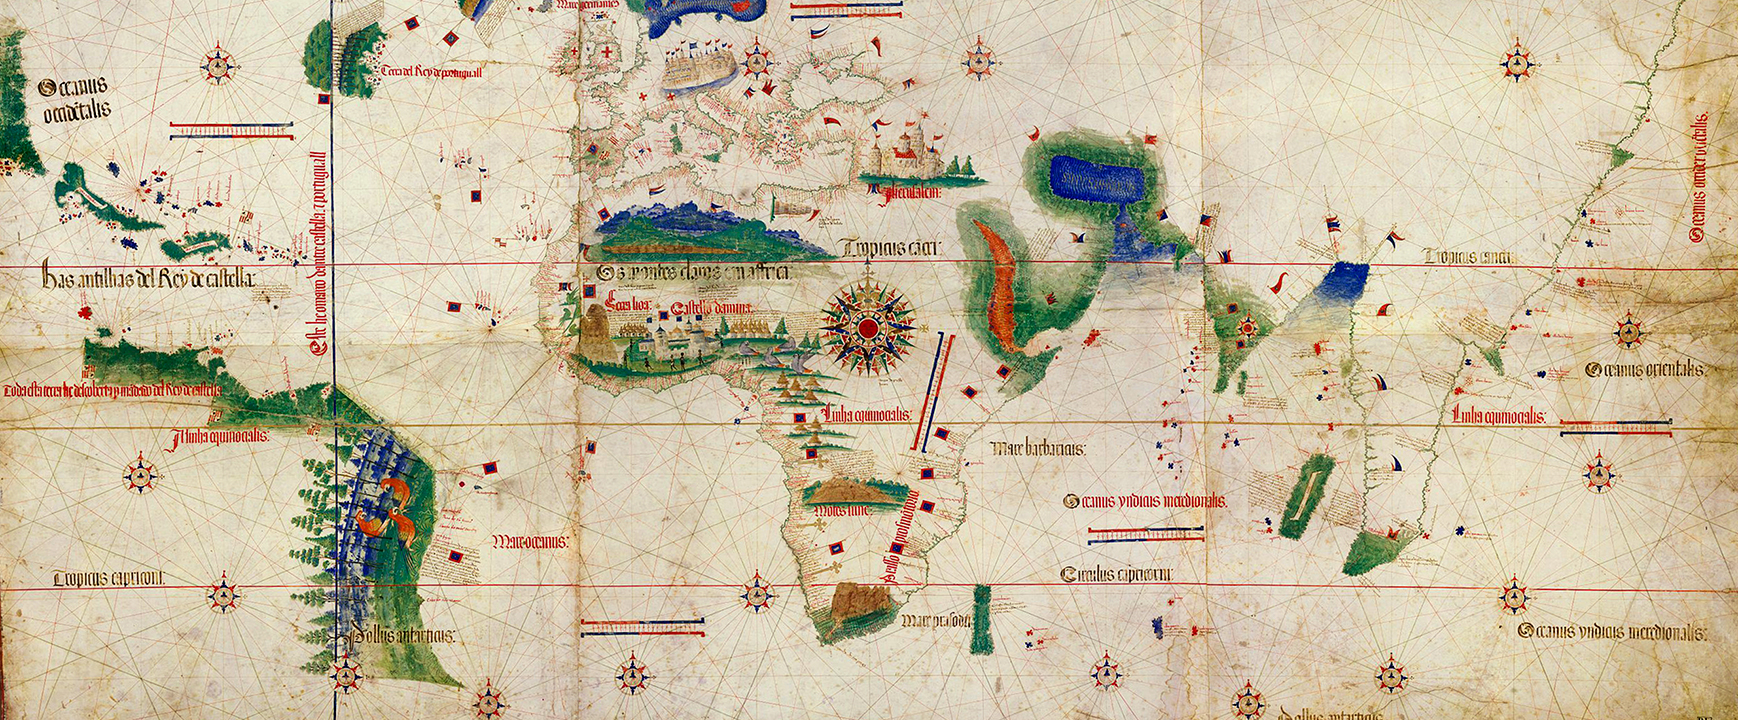 Map of the 1494 Treaty of Tordesilhas